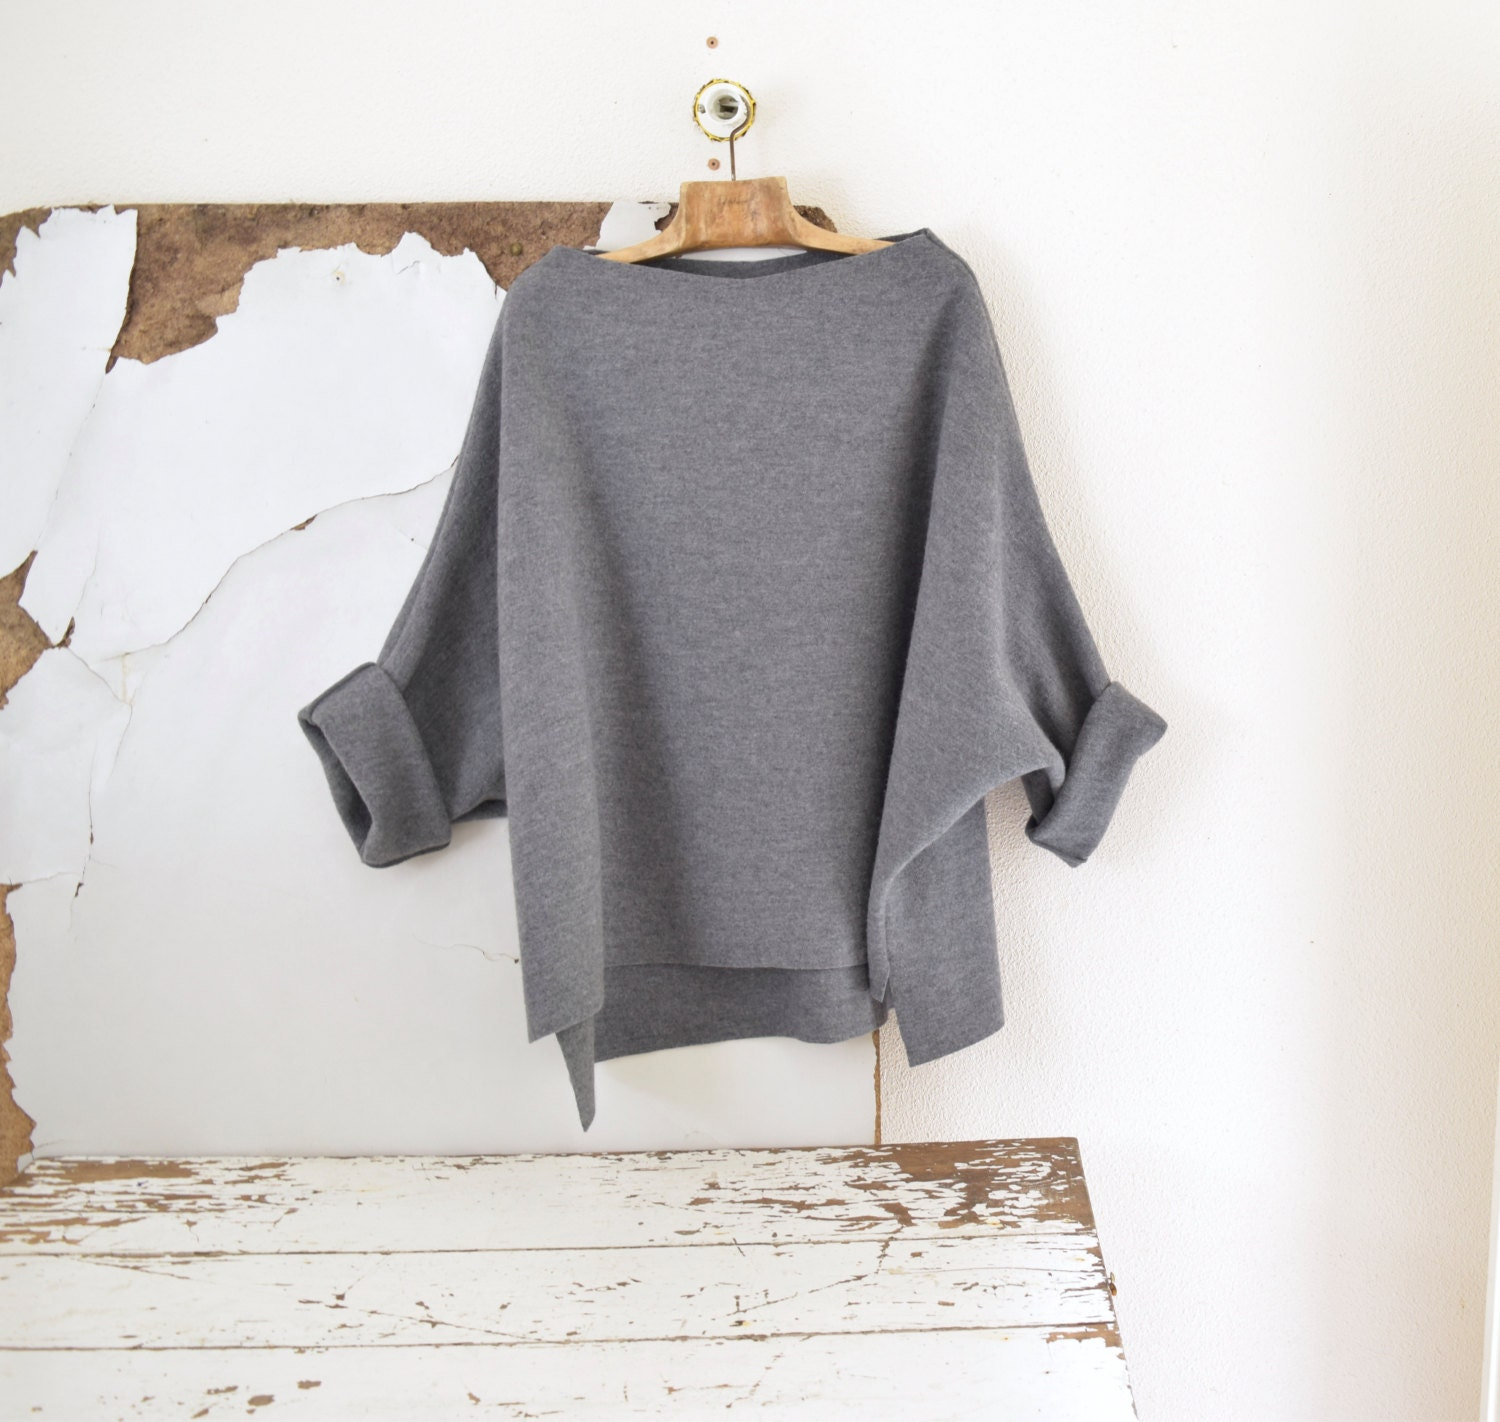 e88ac7750d59 Tunic Sweater in Grey Boiled Wool, Soft Wool Oversize Top, Loose ...